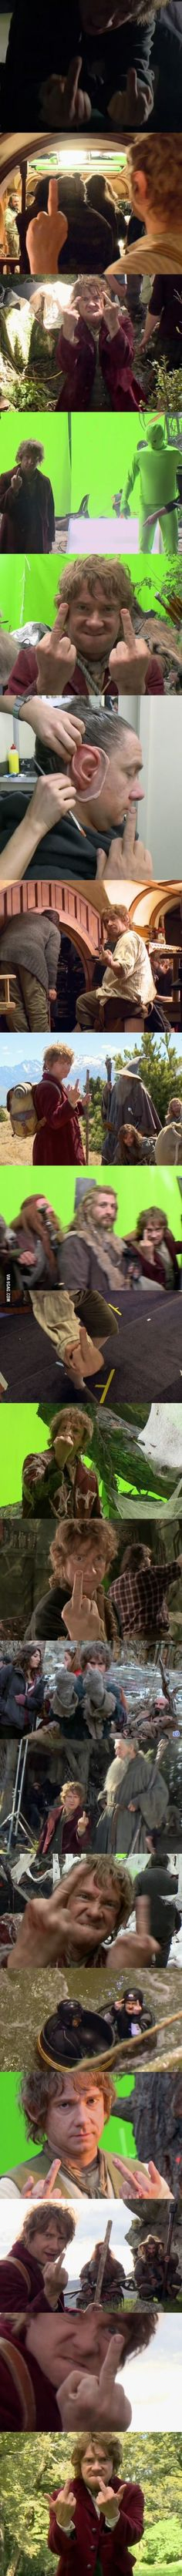 Most Glorious Photos Of Bilbo Baggins Giving The Finger XD Martin Freeman out of character on set of The Hobbit is strangely humorous.